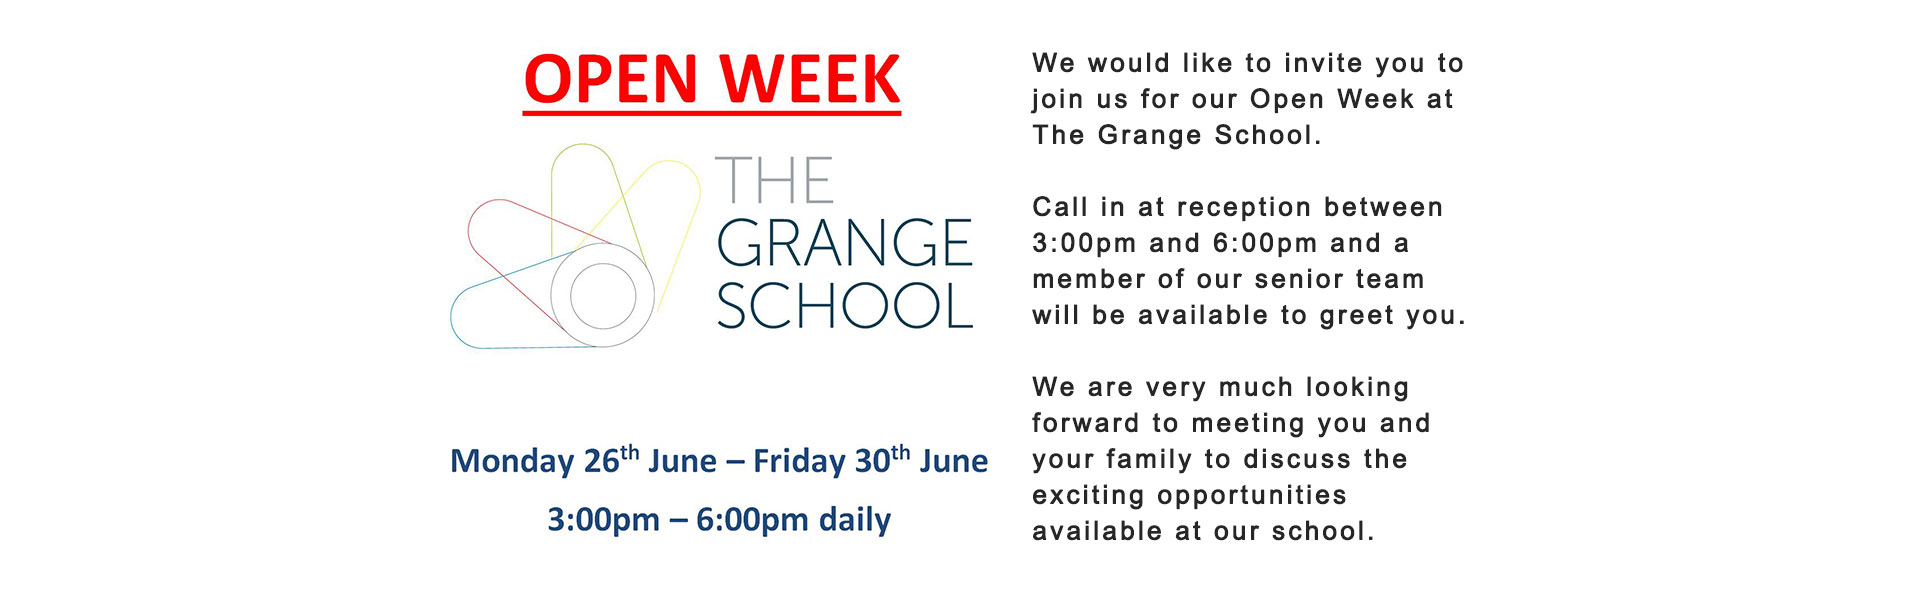 the-grange-school-runcorn-open-week-windmill-hill-1